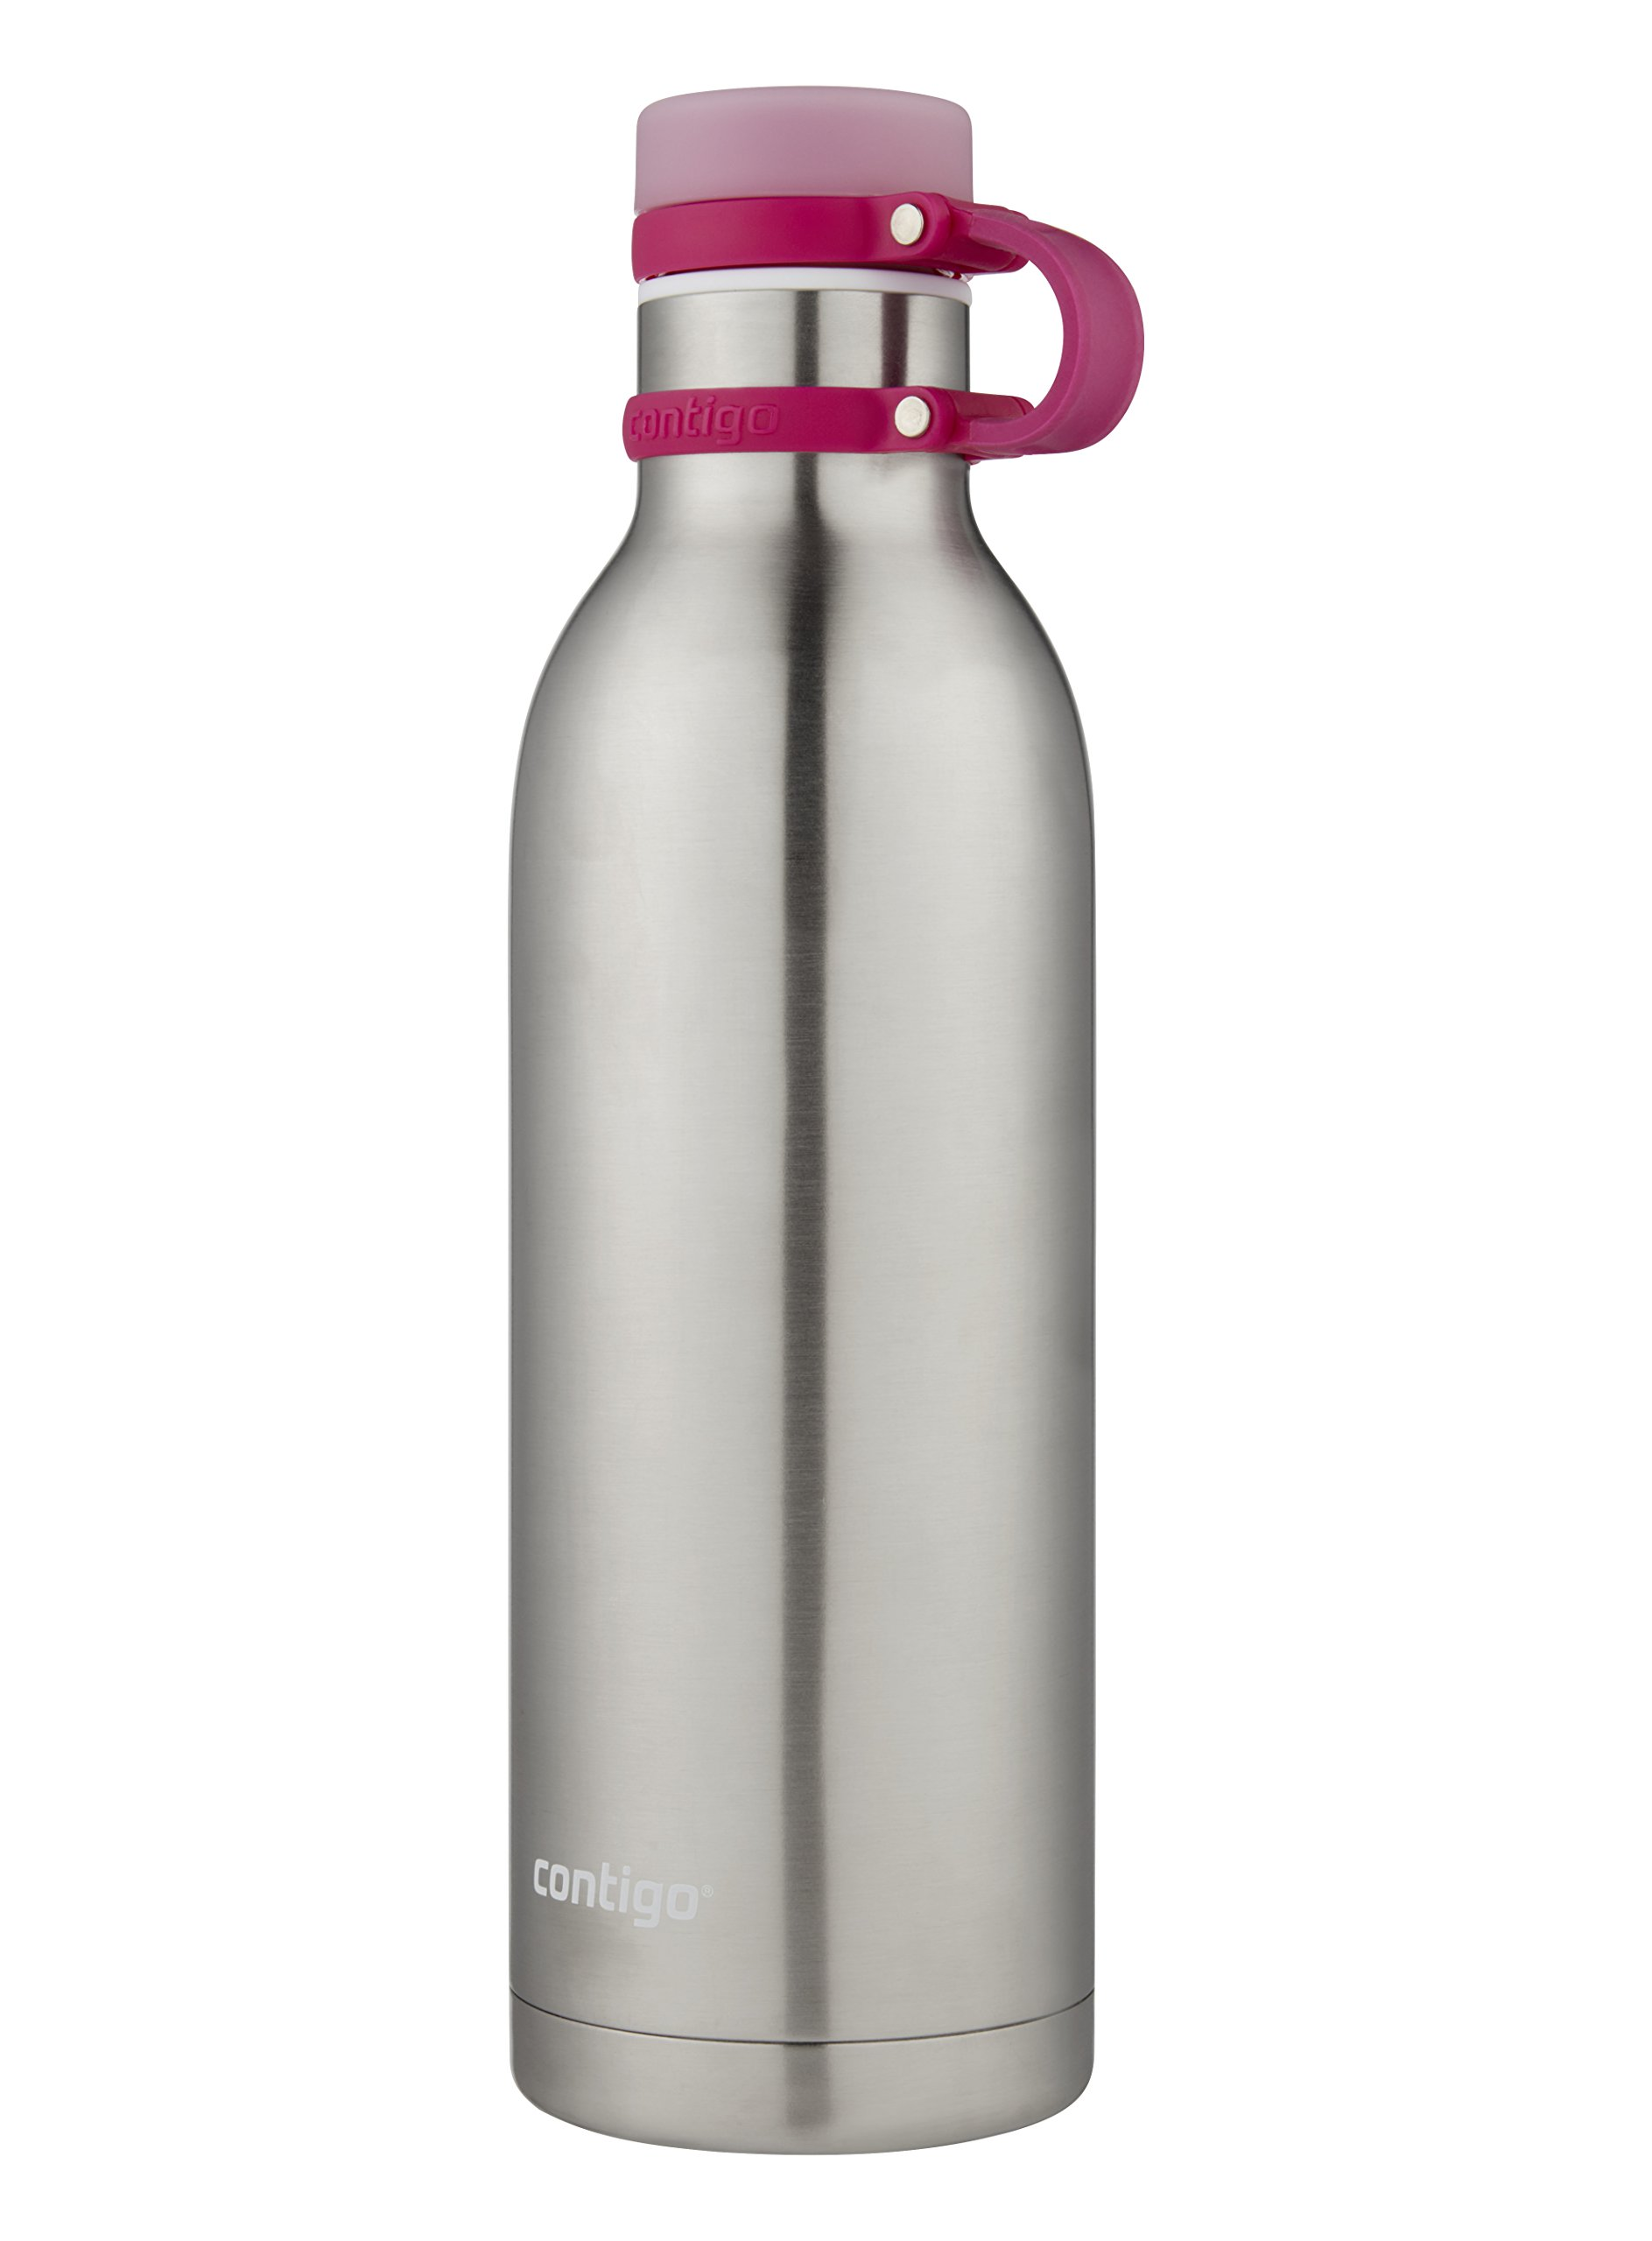 Contigo THERMALOCK Matterhorn Stainless Steel Water Bottle, 32 oz, Stainless Steel with Very Berry Accent by Contigo